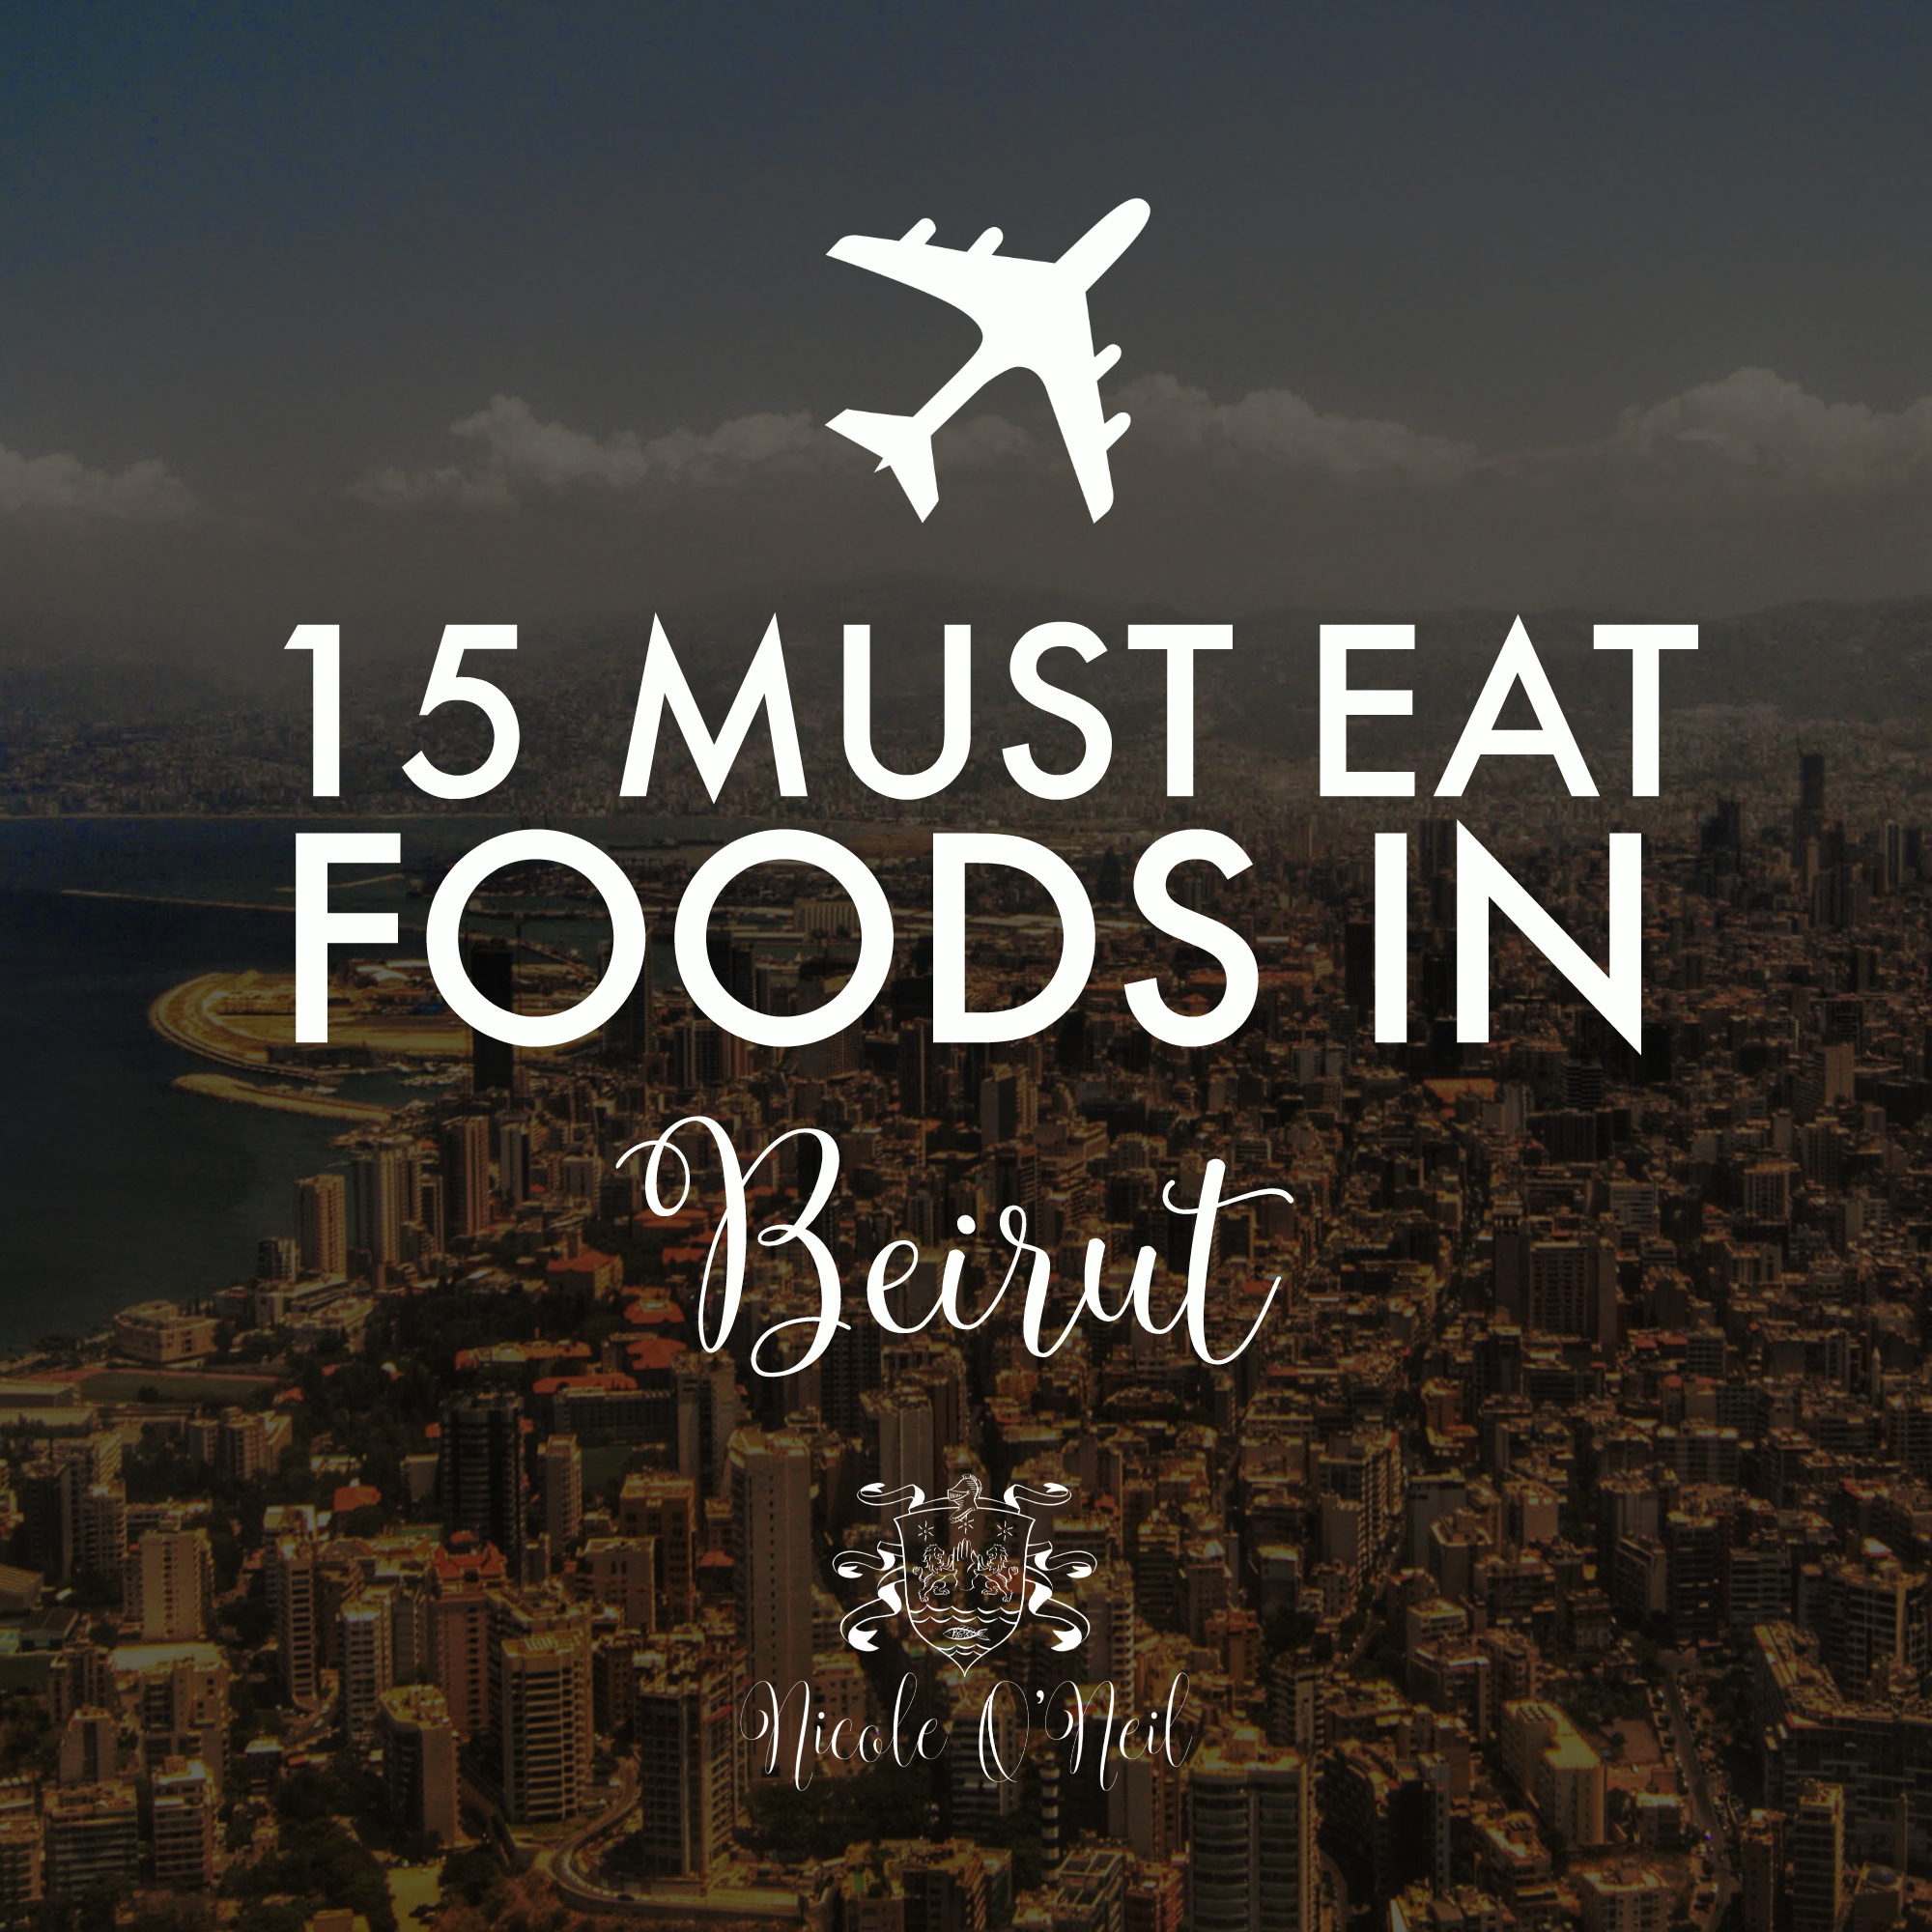 15 Must Eat Foods in Beirut Lebanon - Beirut Travel Guide